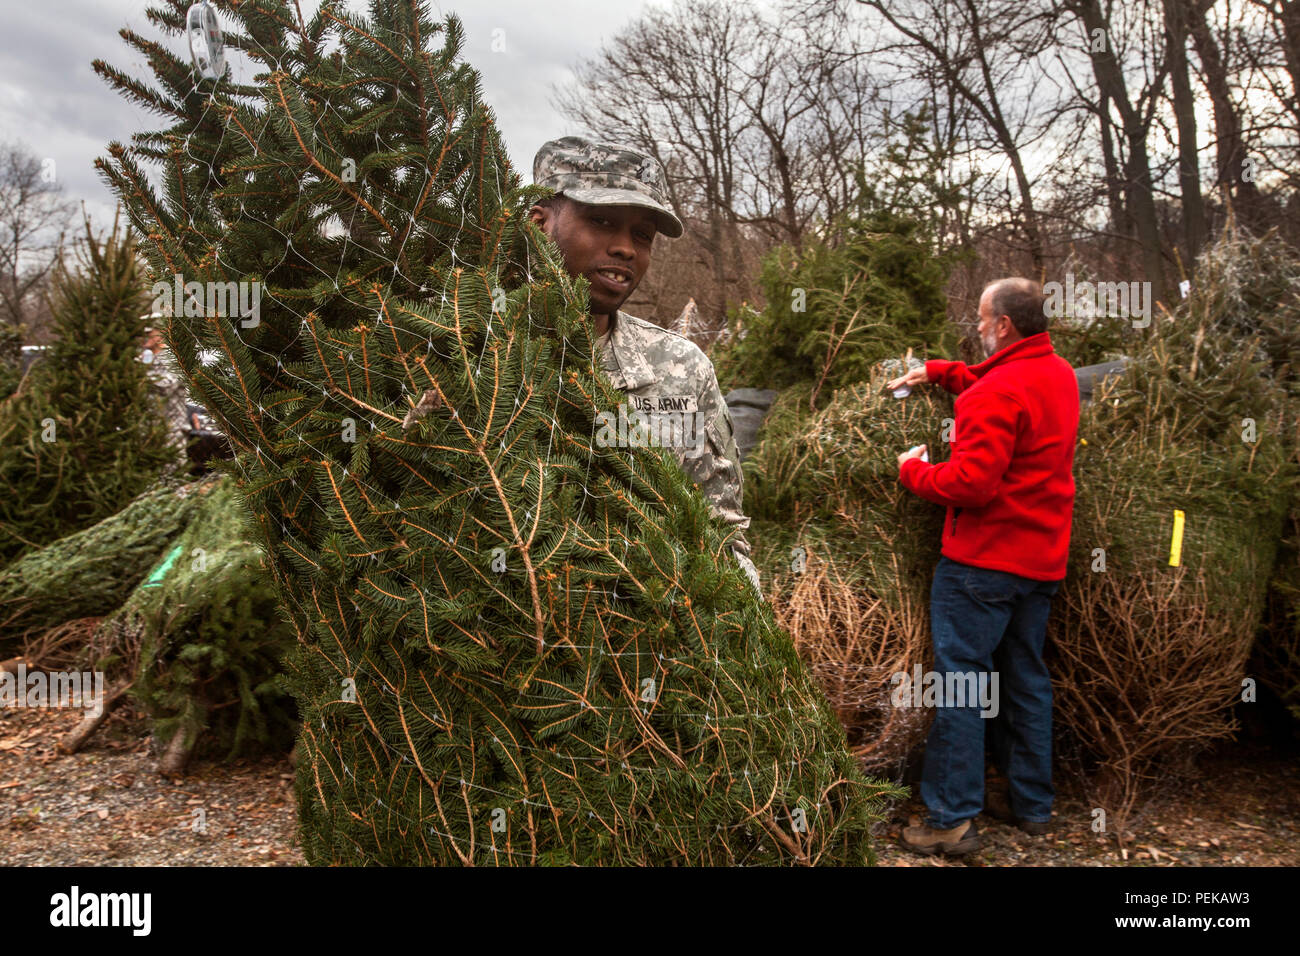 Christmas Tree Growers Association Stock Photos & Christmas Tree ...